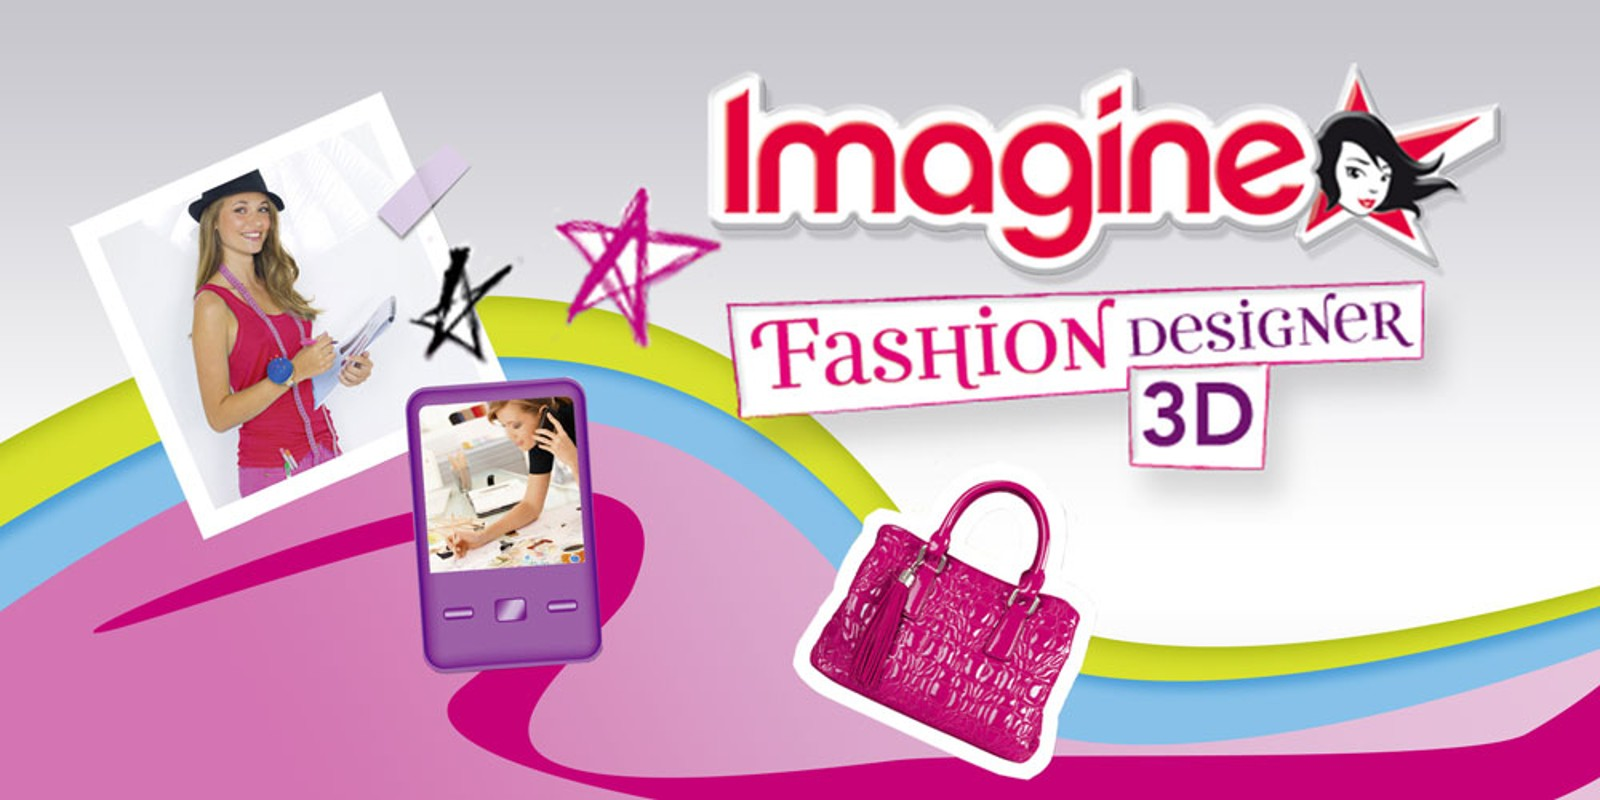 Imagine Fashion Designer for Nintendo 3DS - Nintendo Game Details